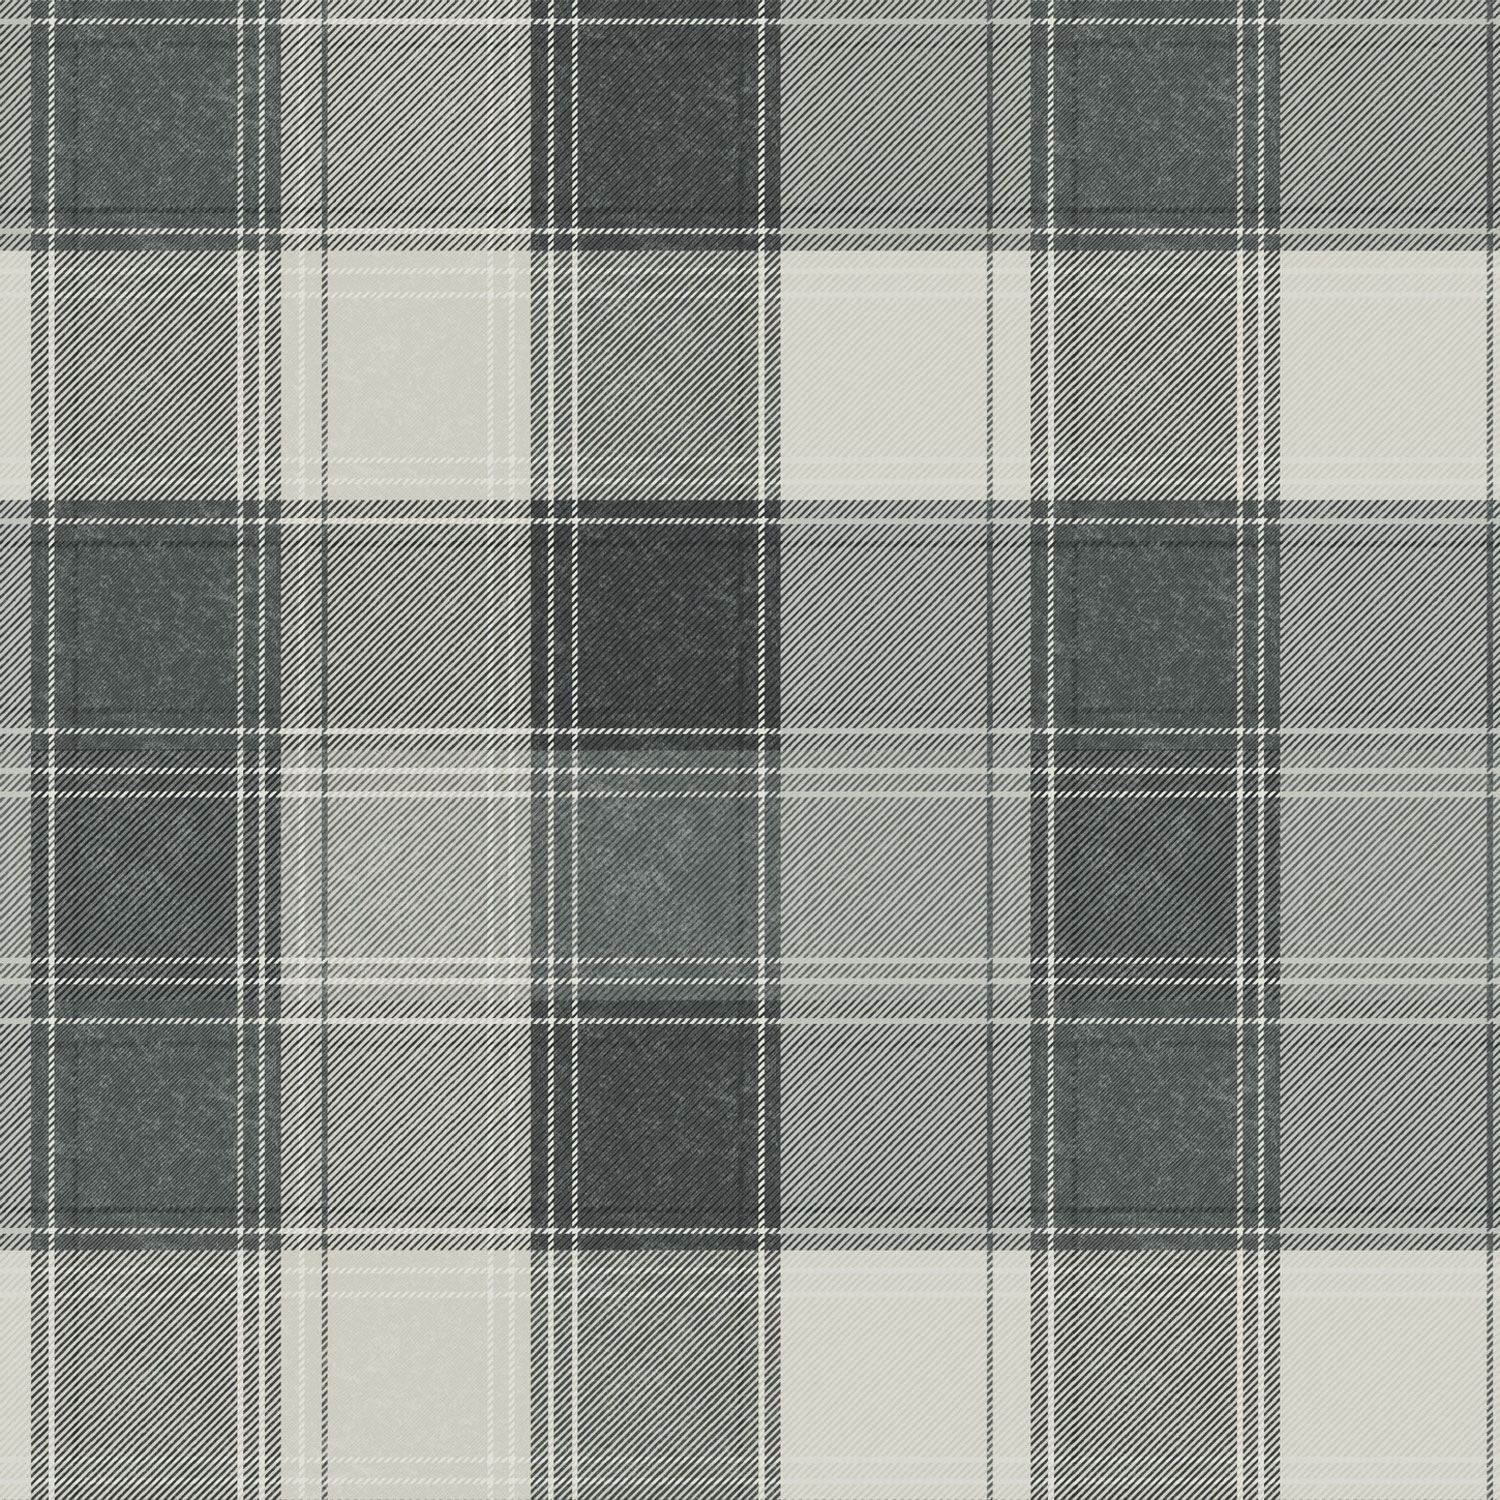 Details About Country Check Wallpaper Mono By Arthouse 906703 Fabric Effect Matte Finish